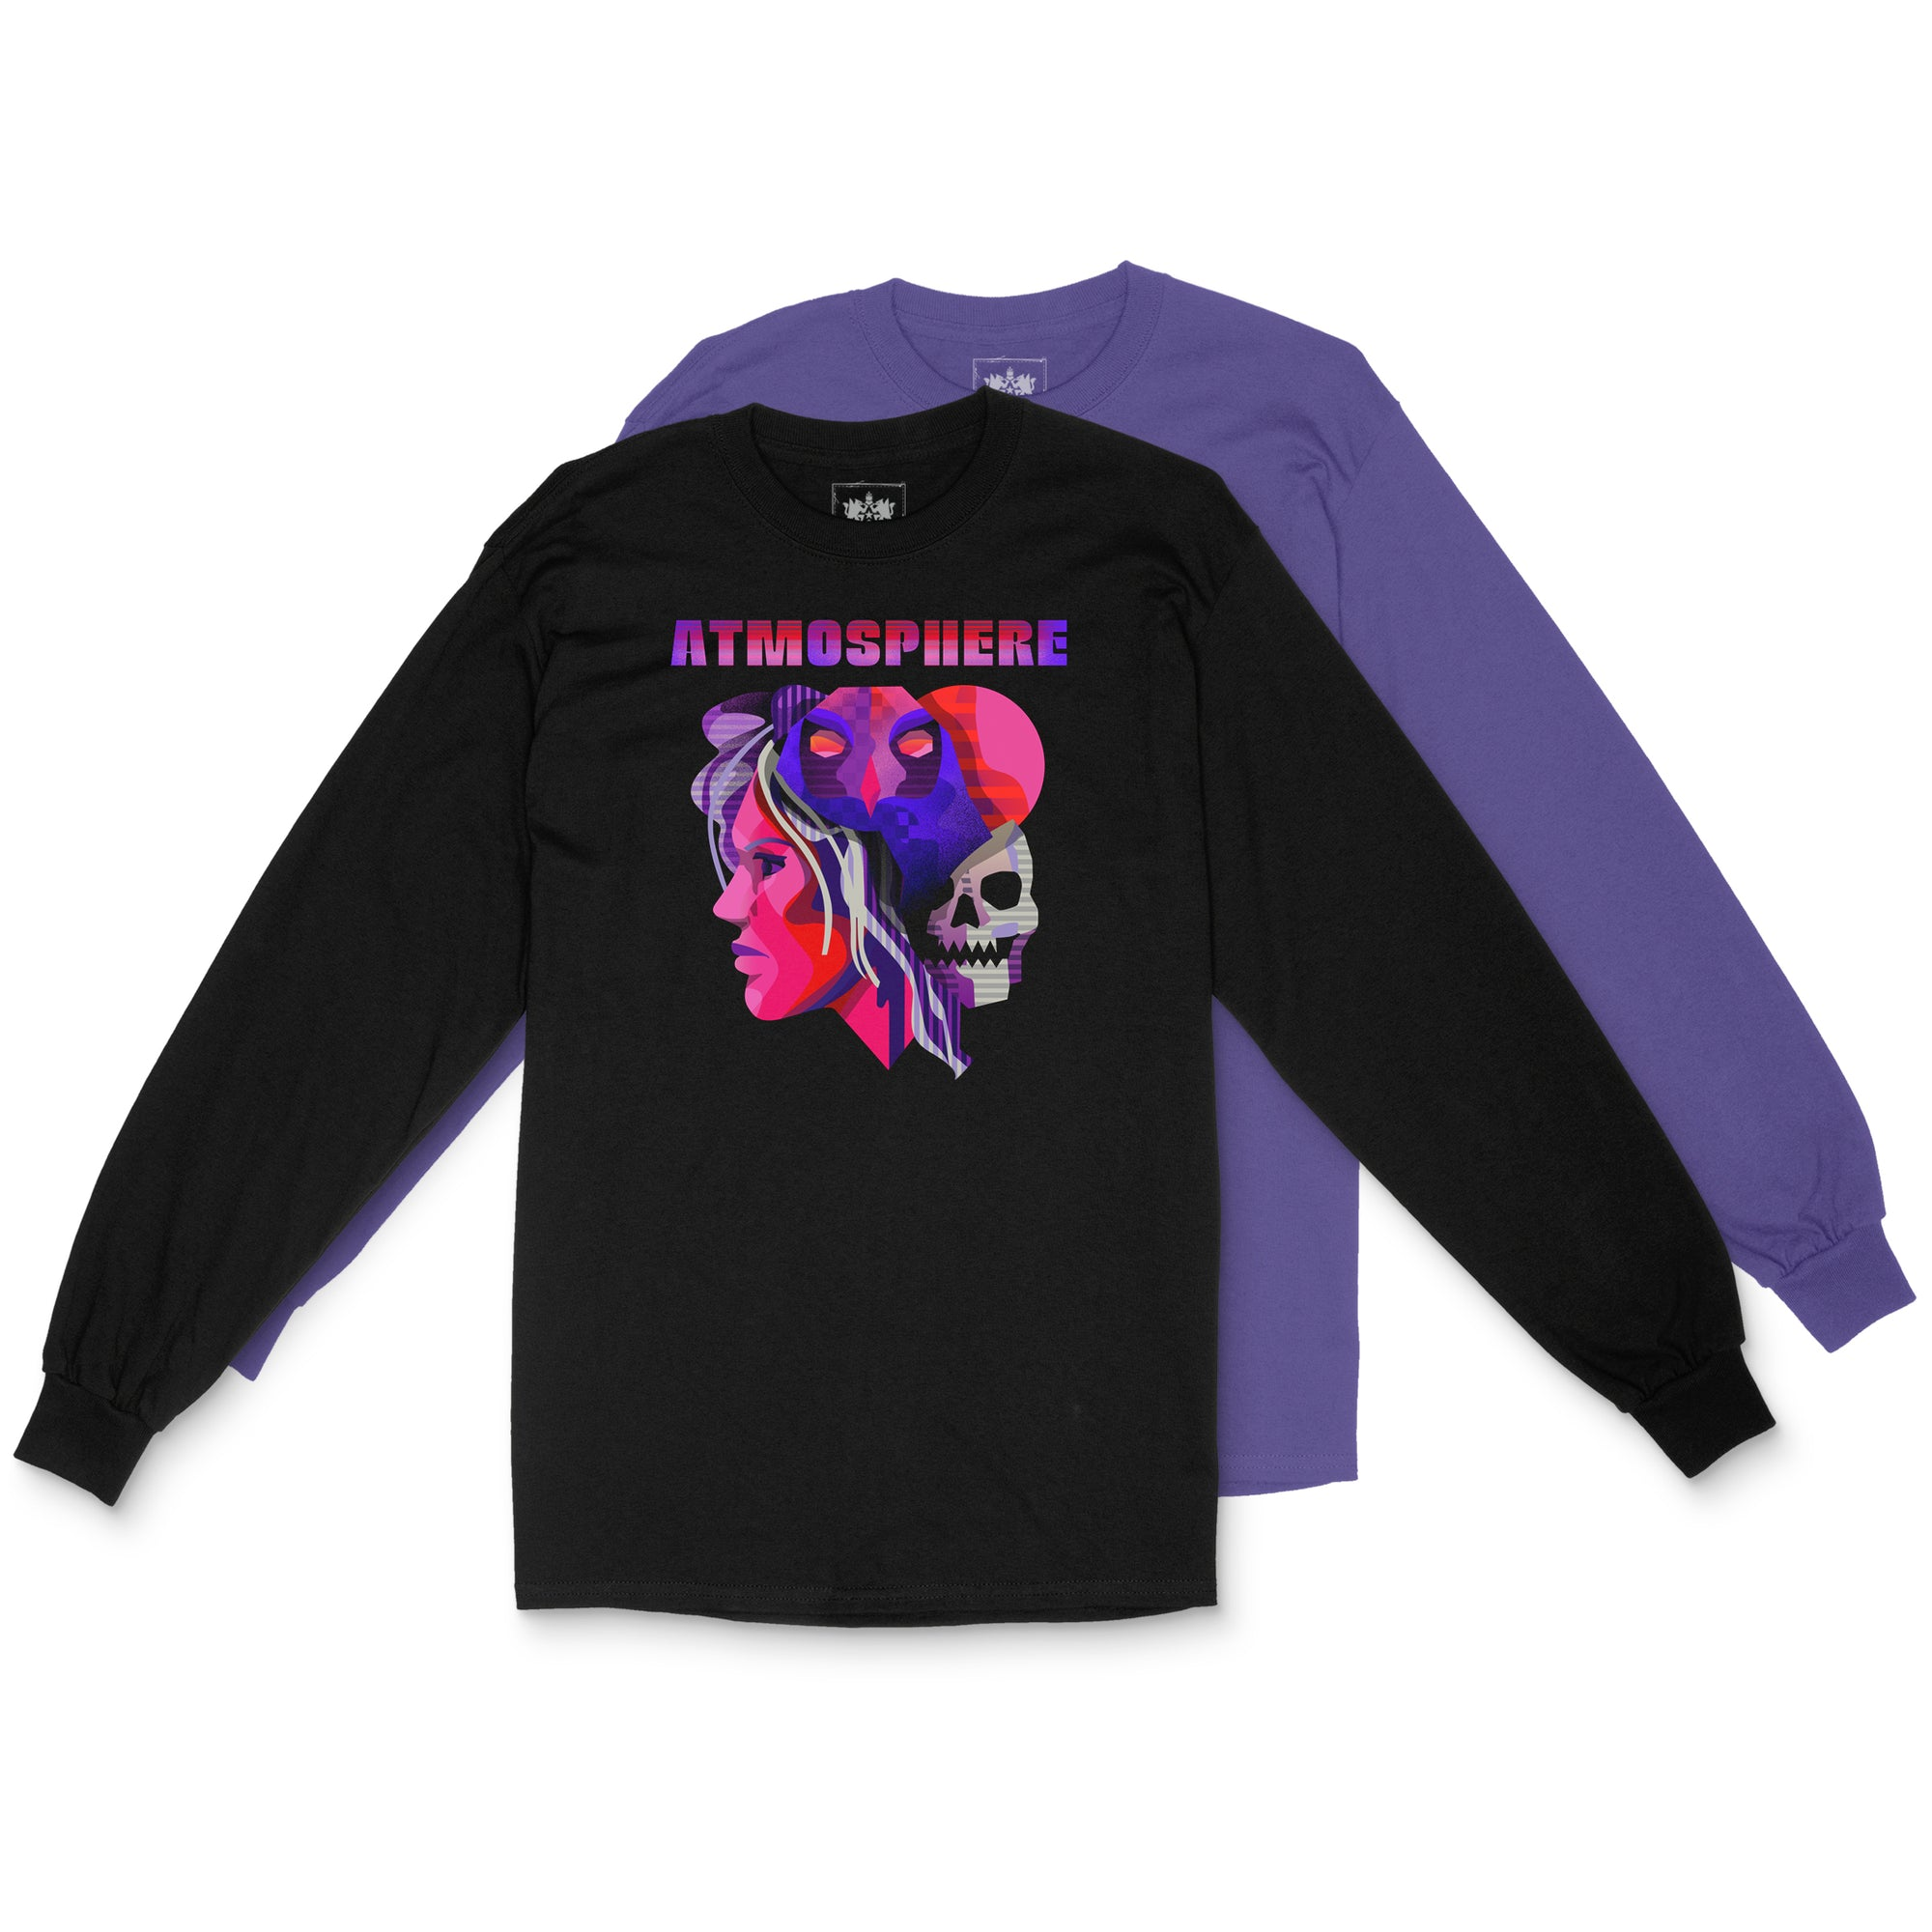 "Atmosphere ""TDBH"" Long Sleeve Shirt"